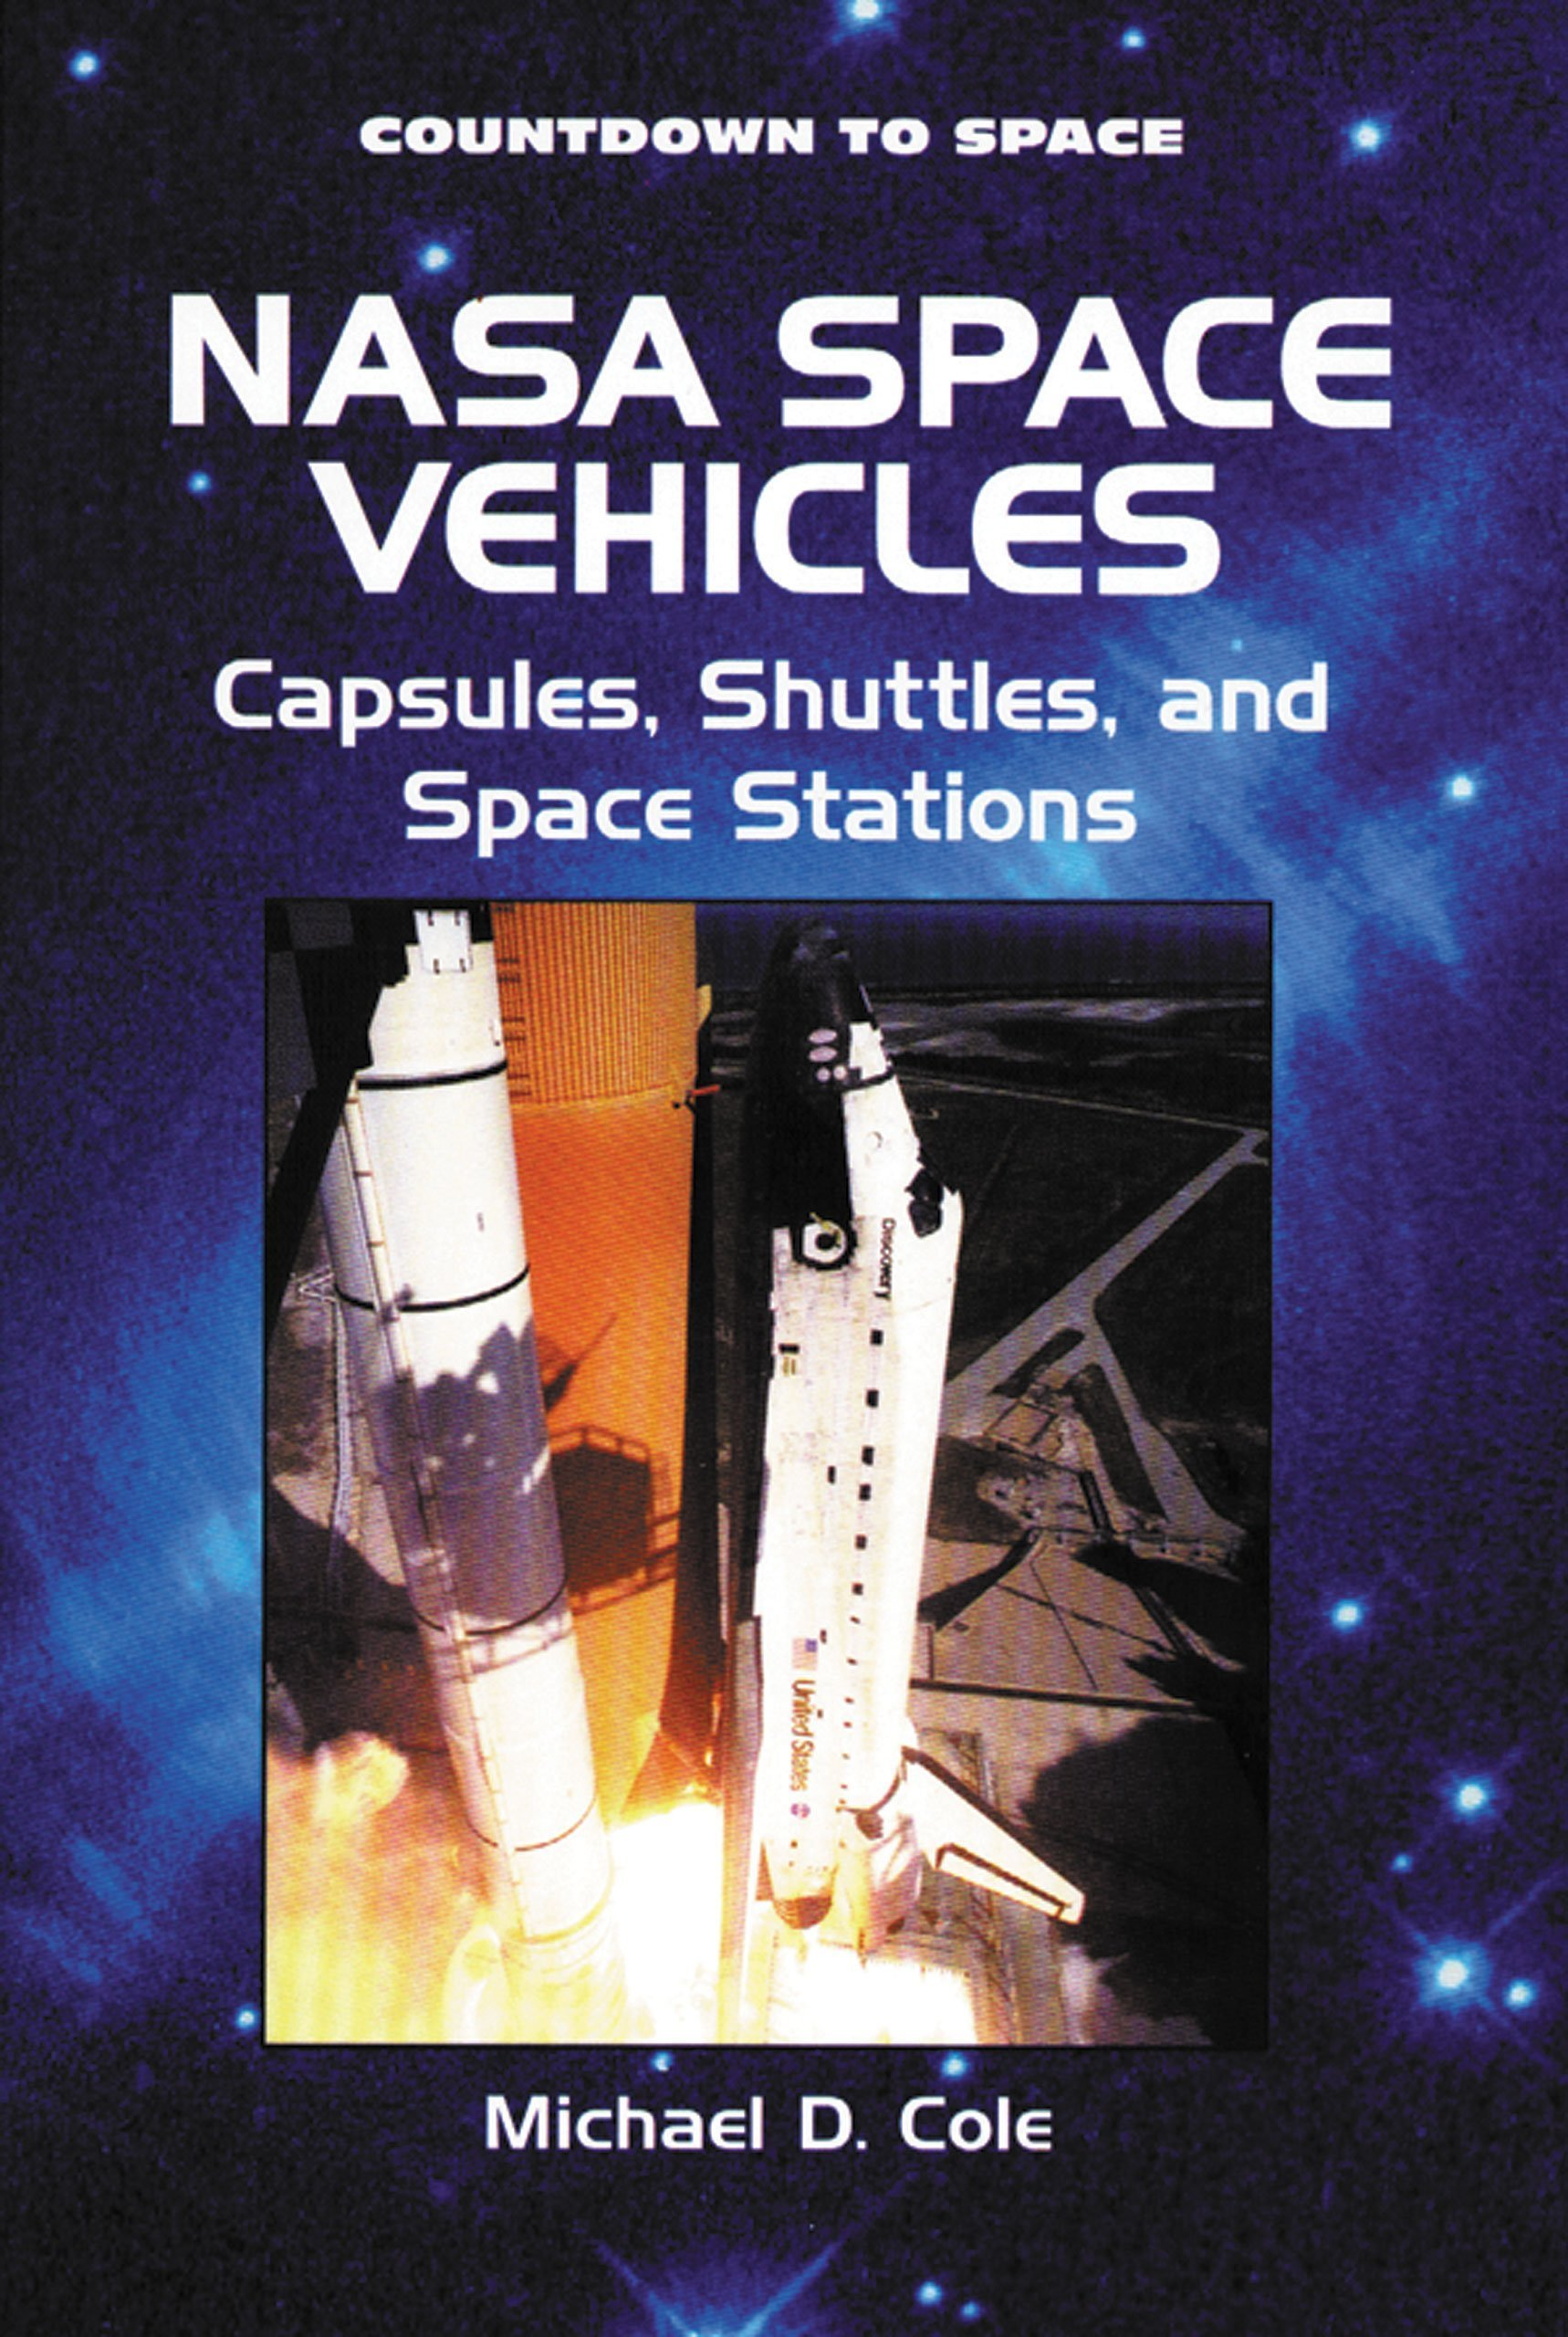 Nasa Space Vehicles: Capsules, Shuttles, and Space Stations (Countdown to Space) pdf